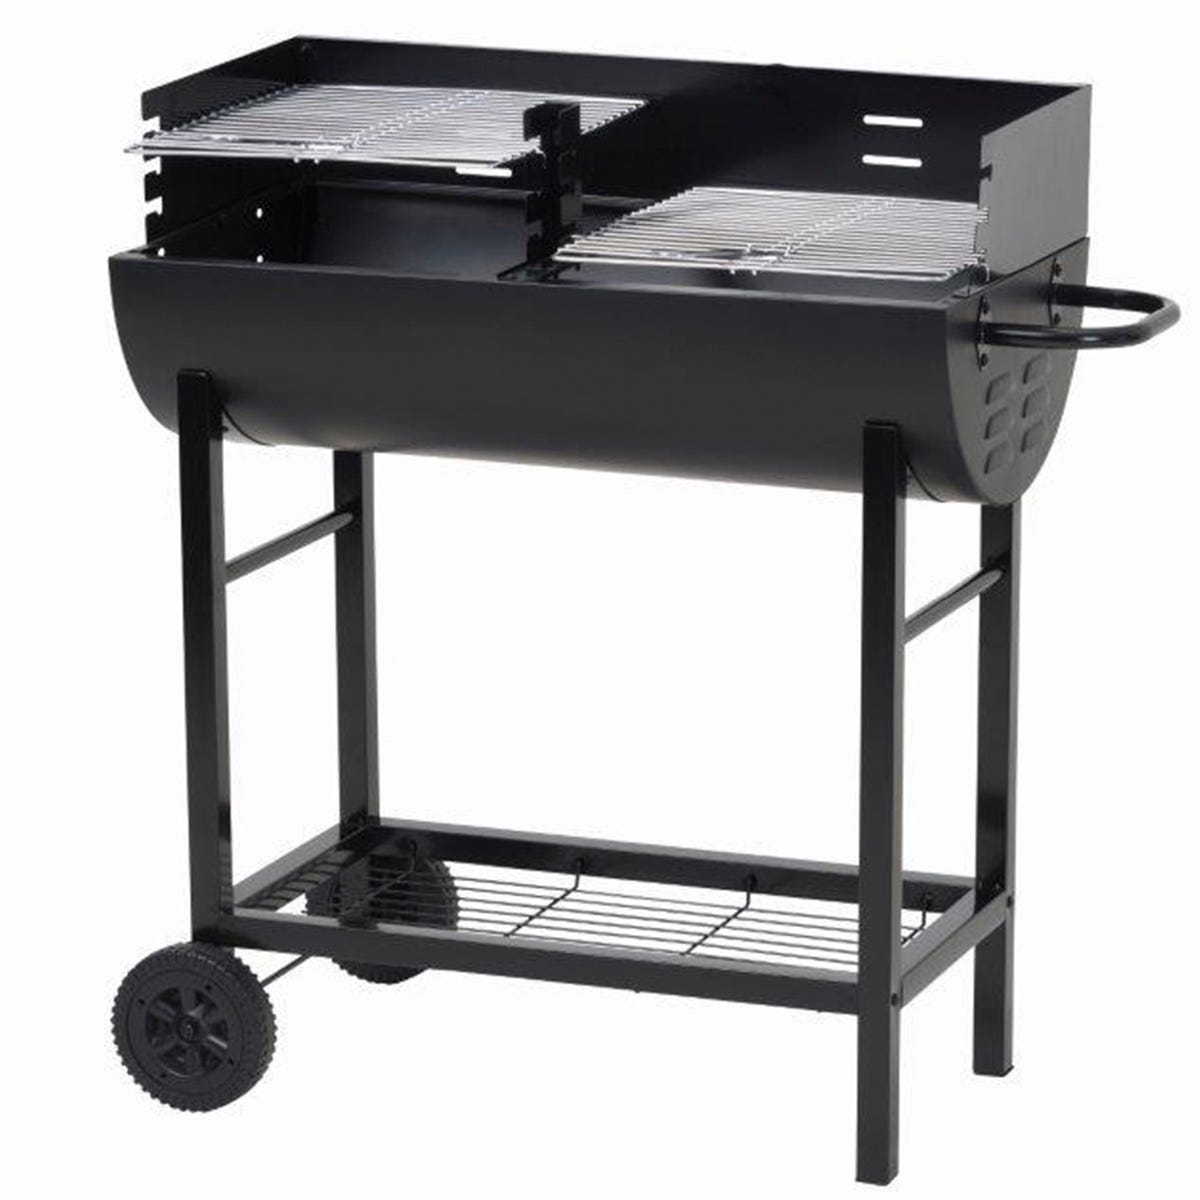 Lifestyle Appliances 1/2 Barrel Charcoal BBQ with Wind Shield